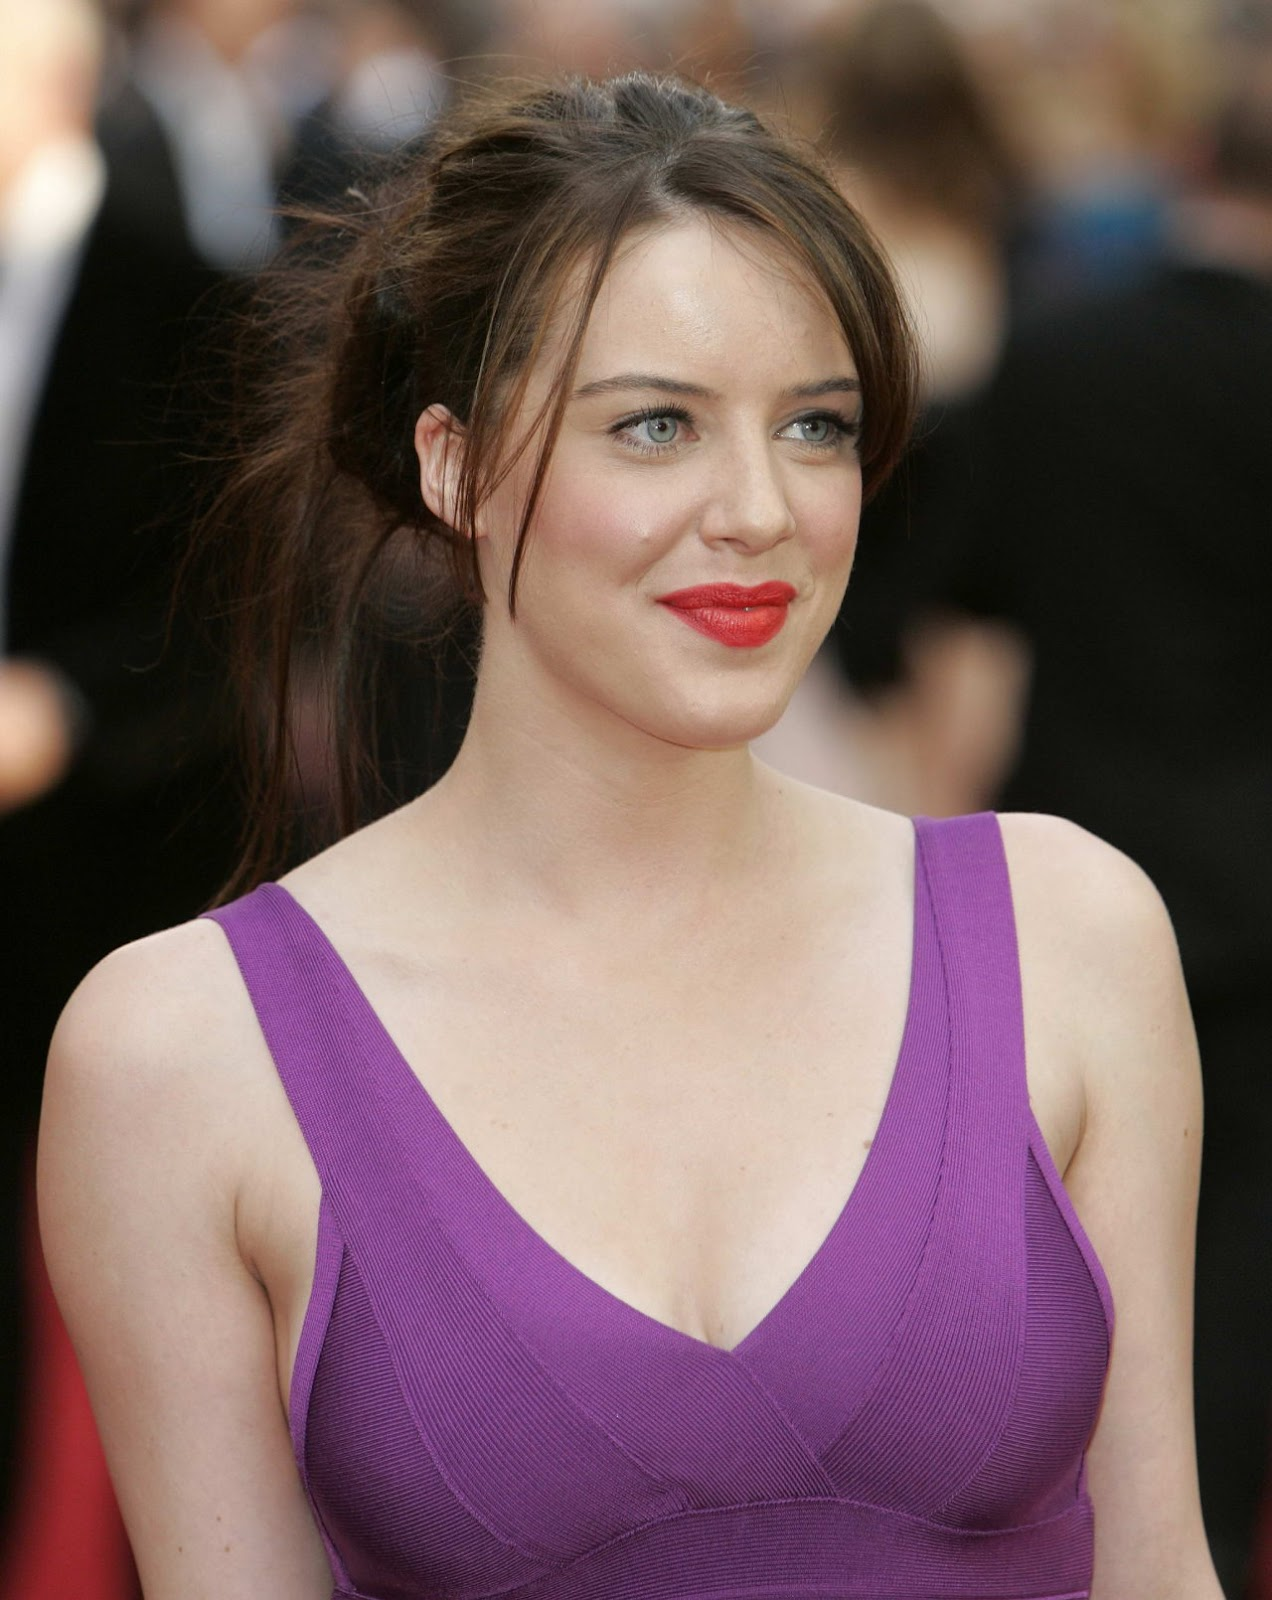 Michelle Ryan (born 1984)